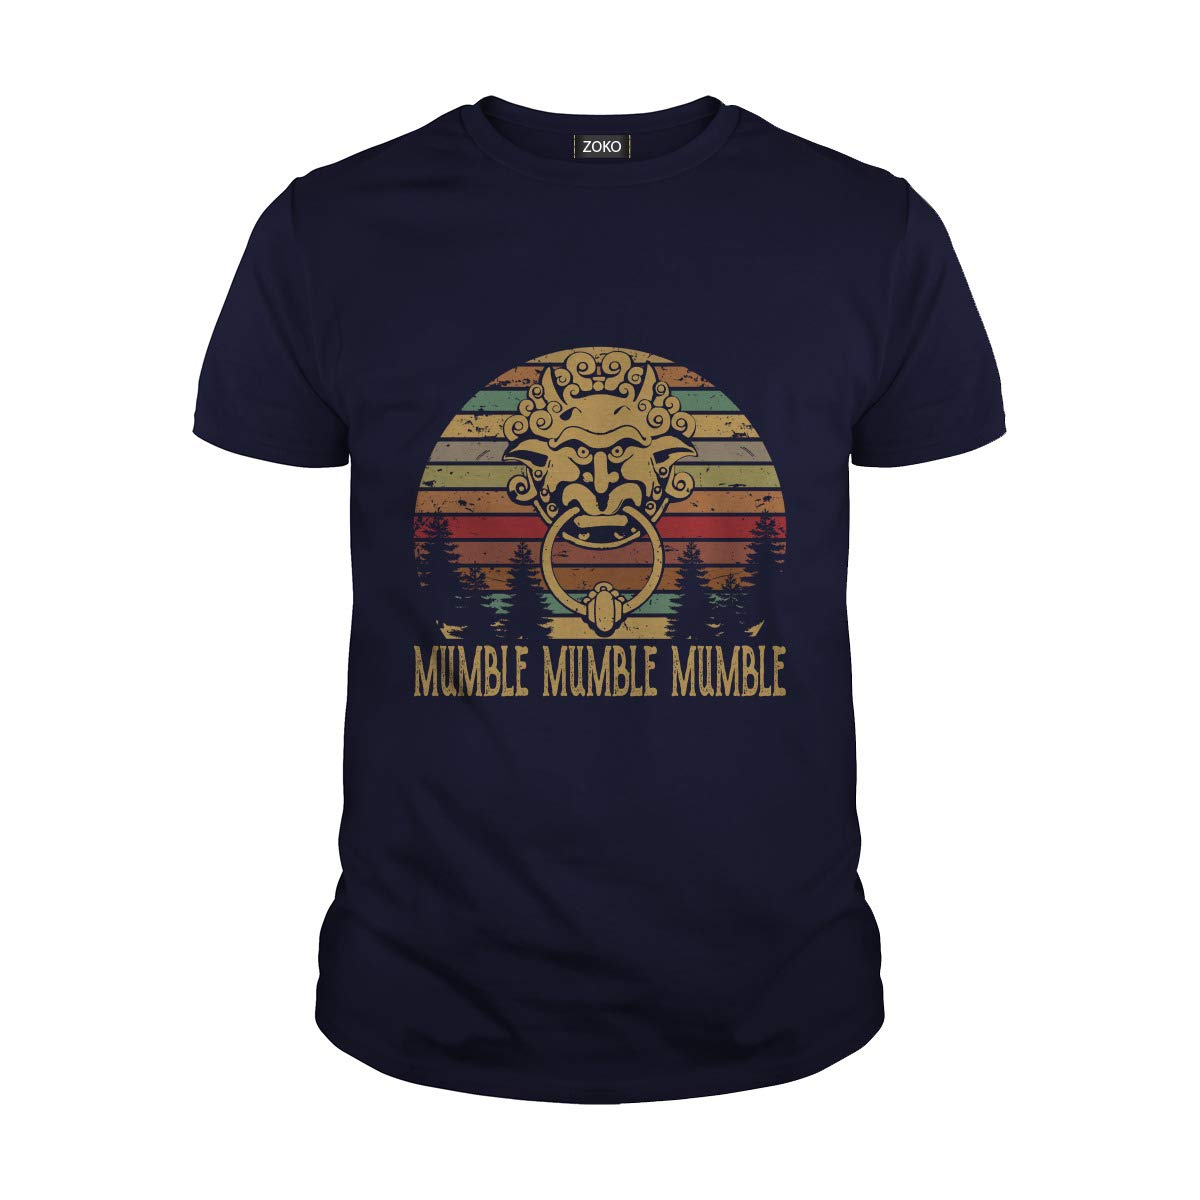 Guys Tee Navy Medium Zoko Apparel Mumble Mumble Mumble TShirt